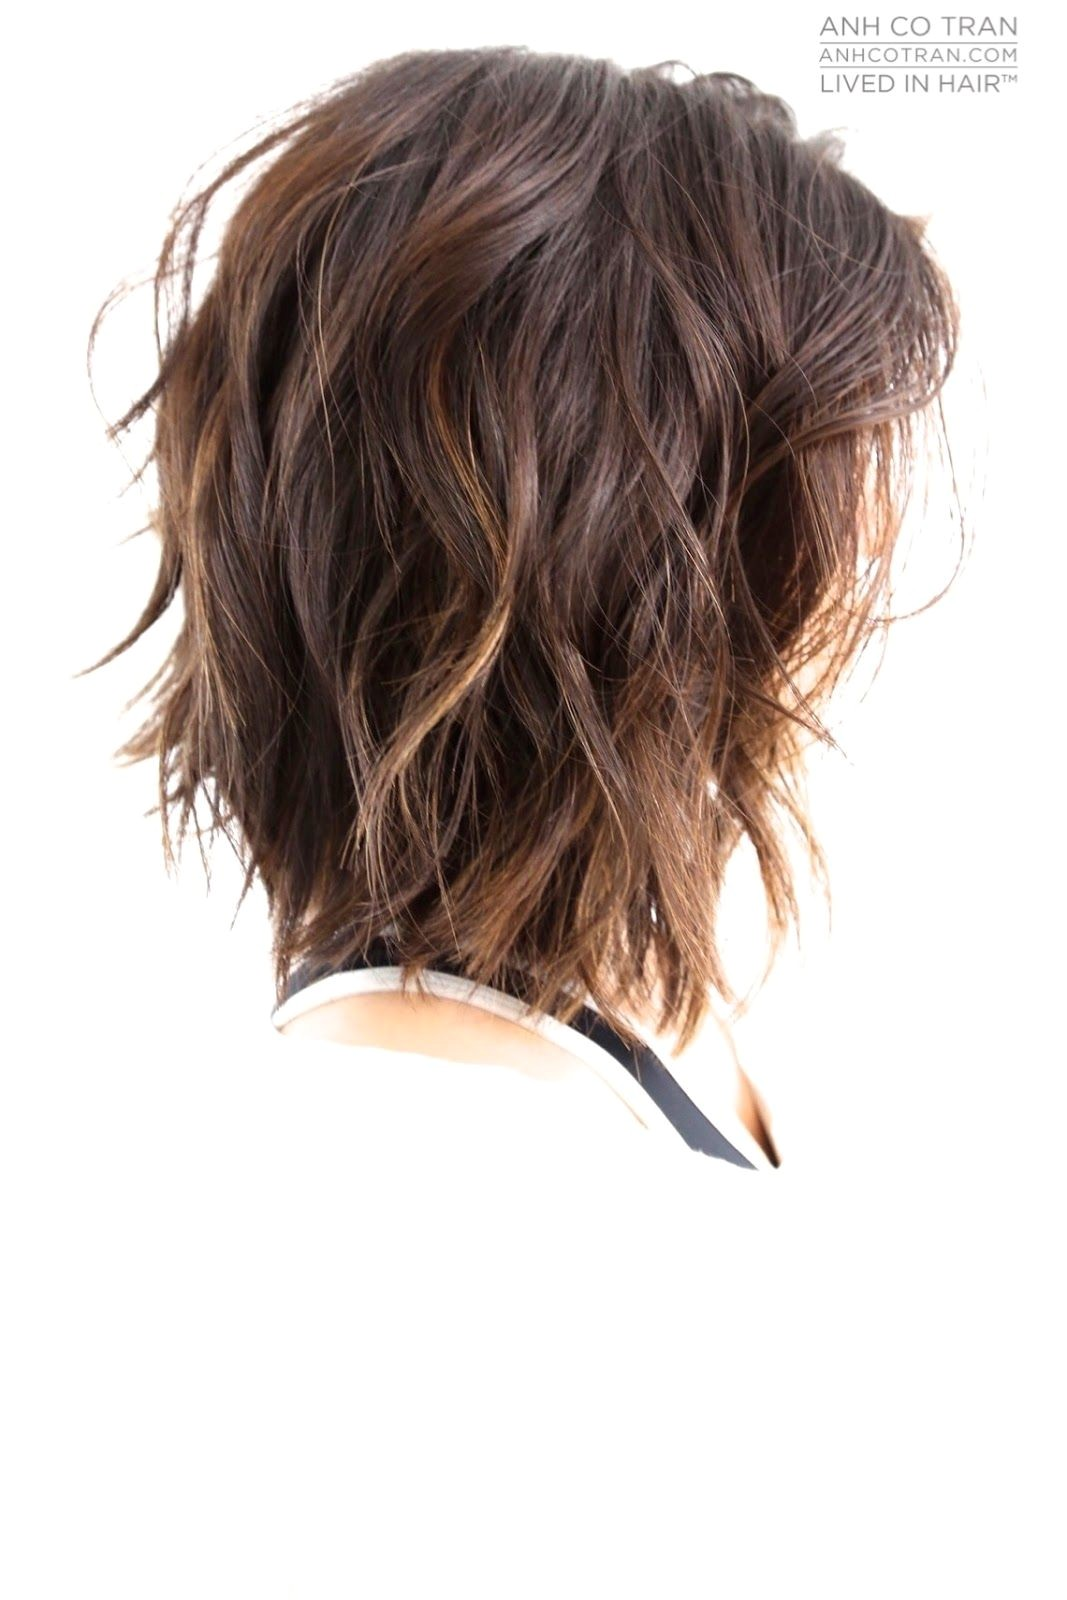 Feather Cut Hairstyle for Girls Anh Co Tran Hair Pinterest